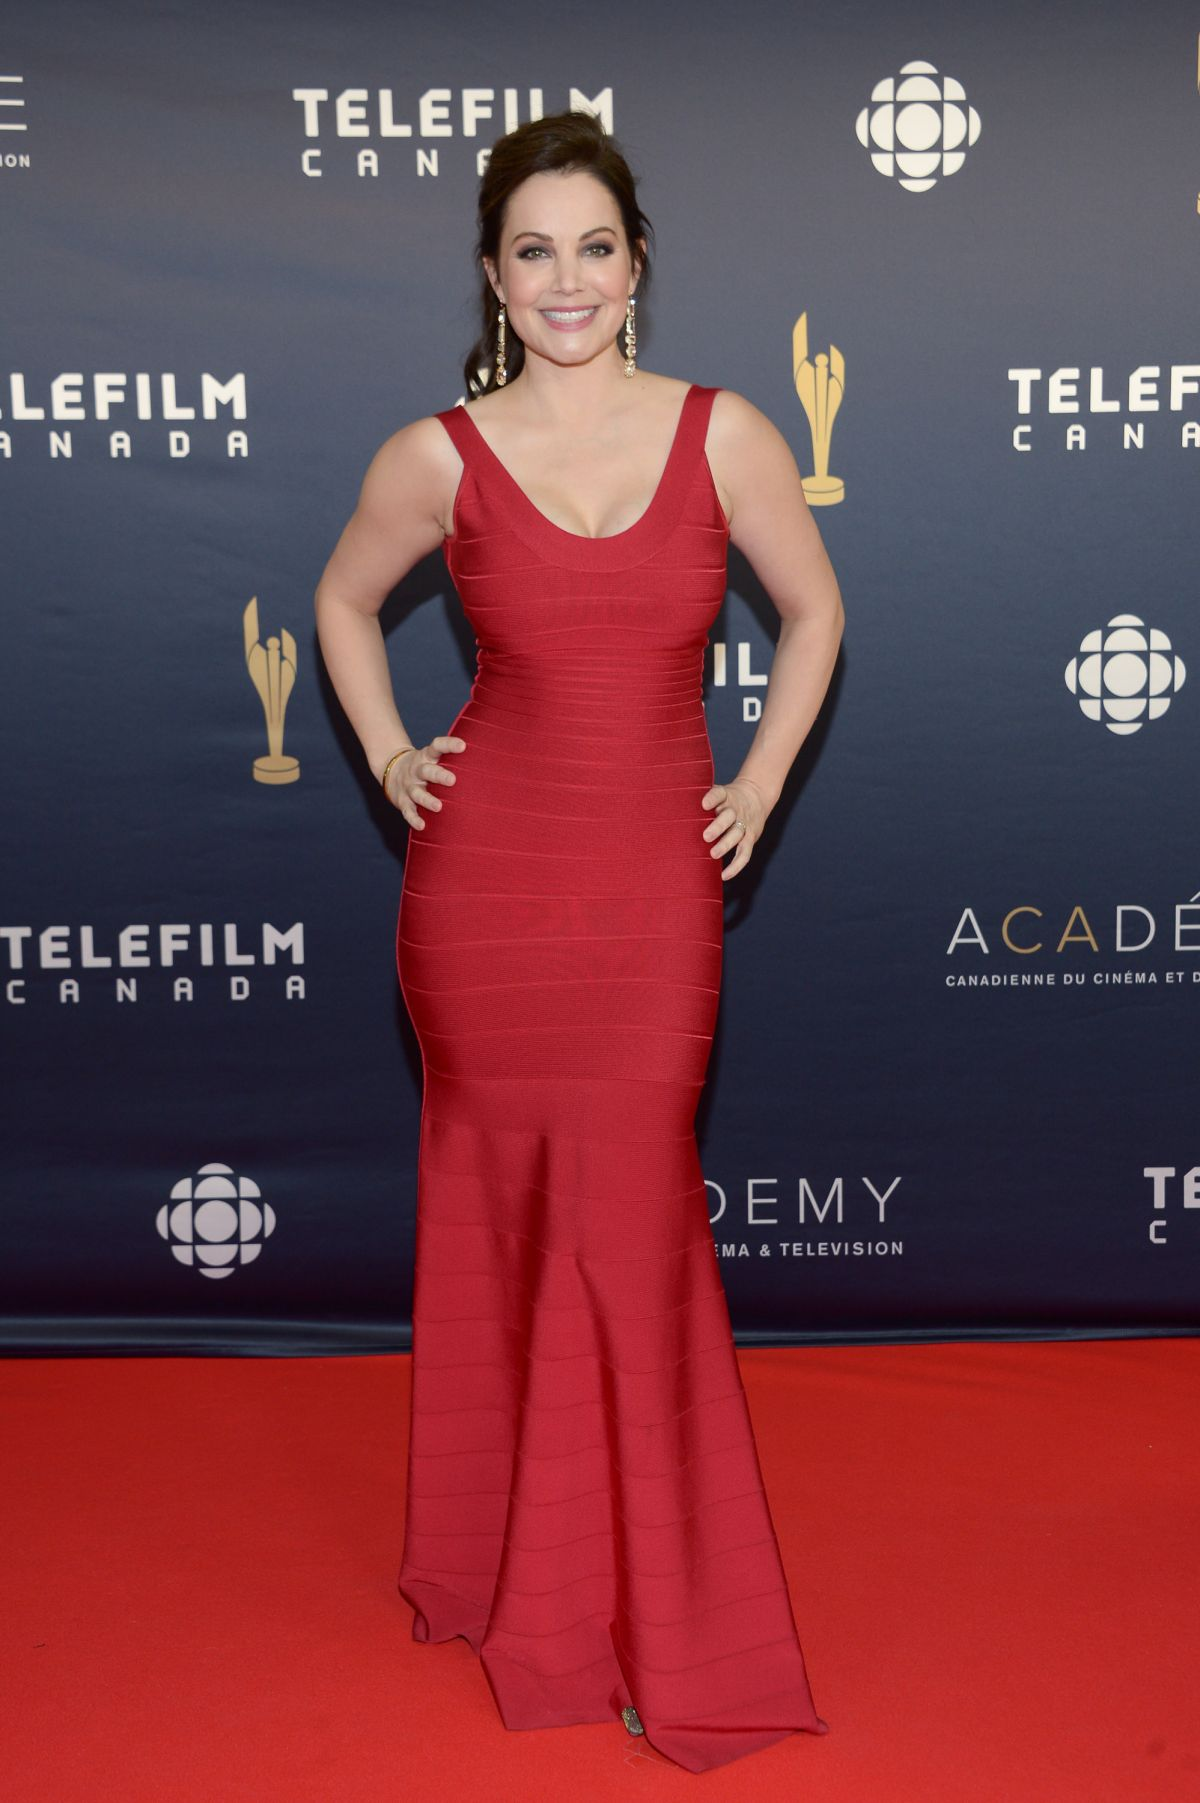 Erica Durance At 2017 Canadian Screen Awards in Toronto